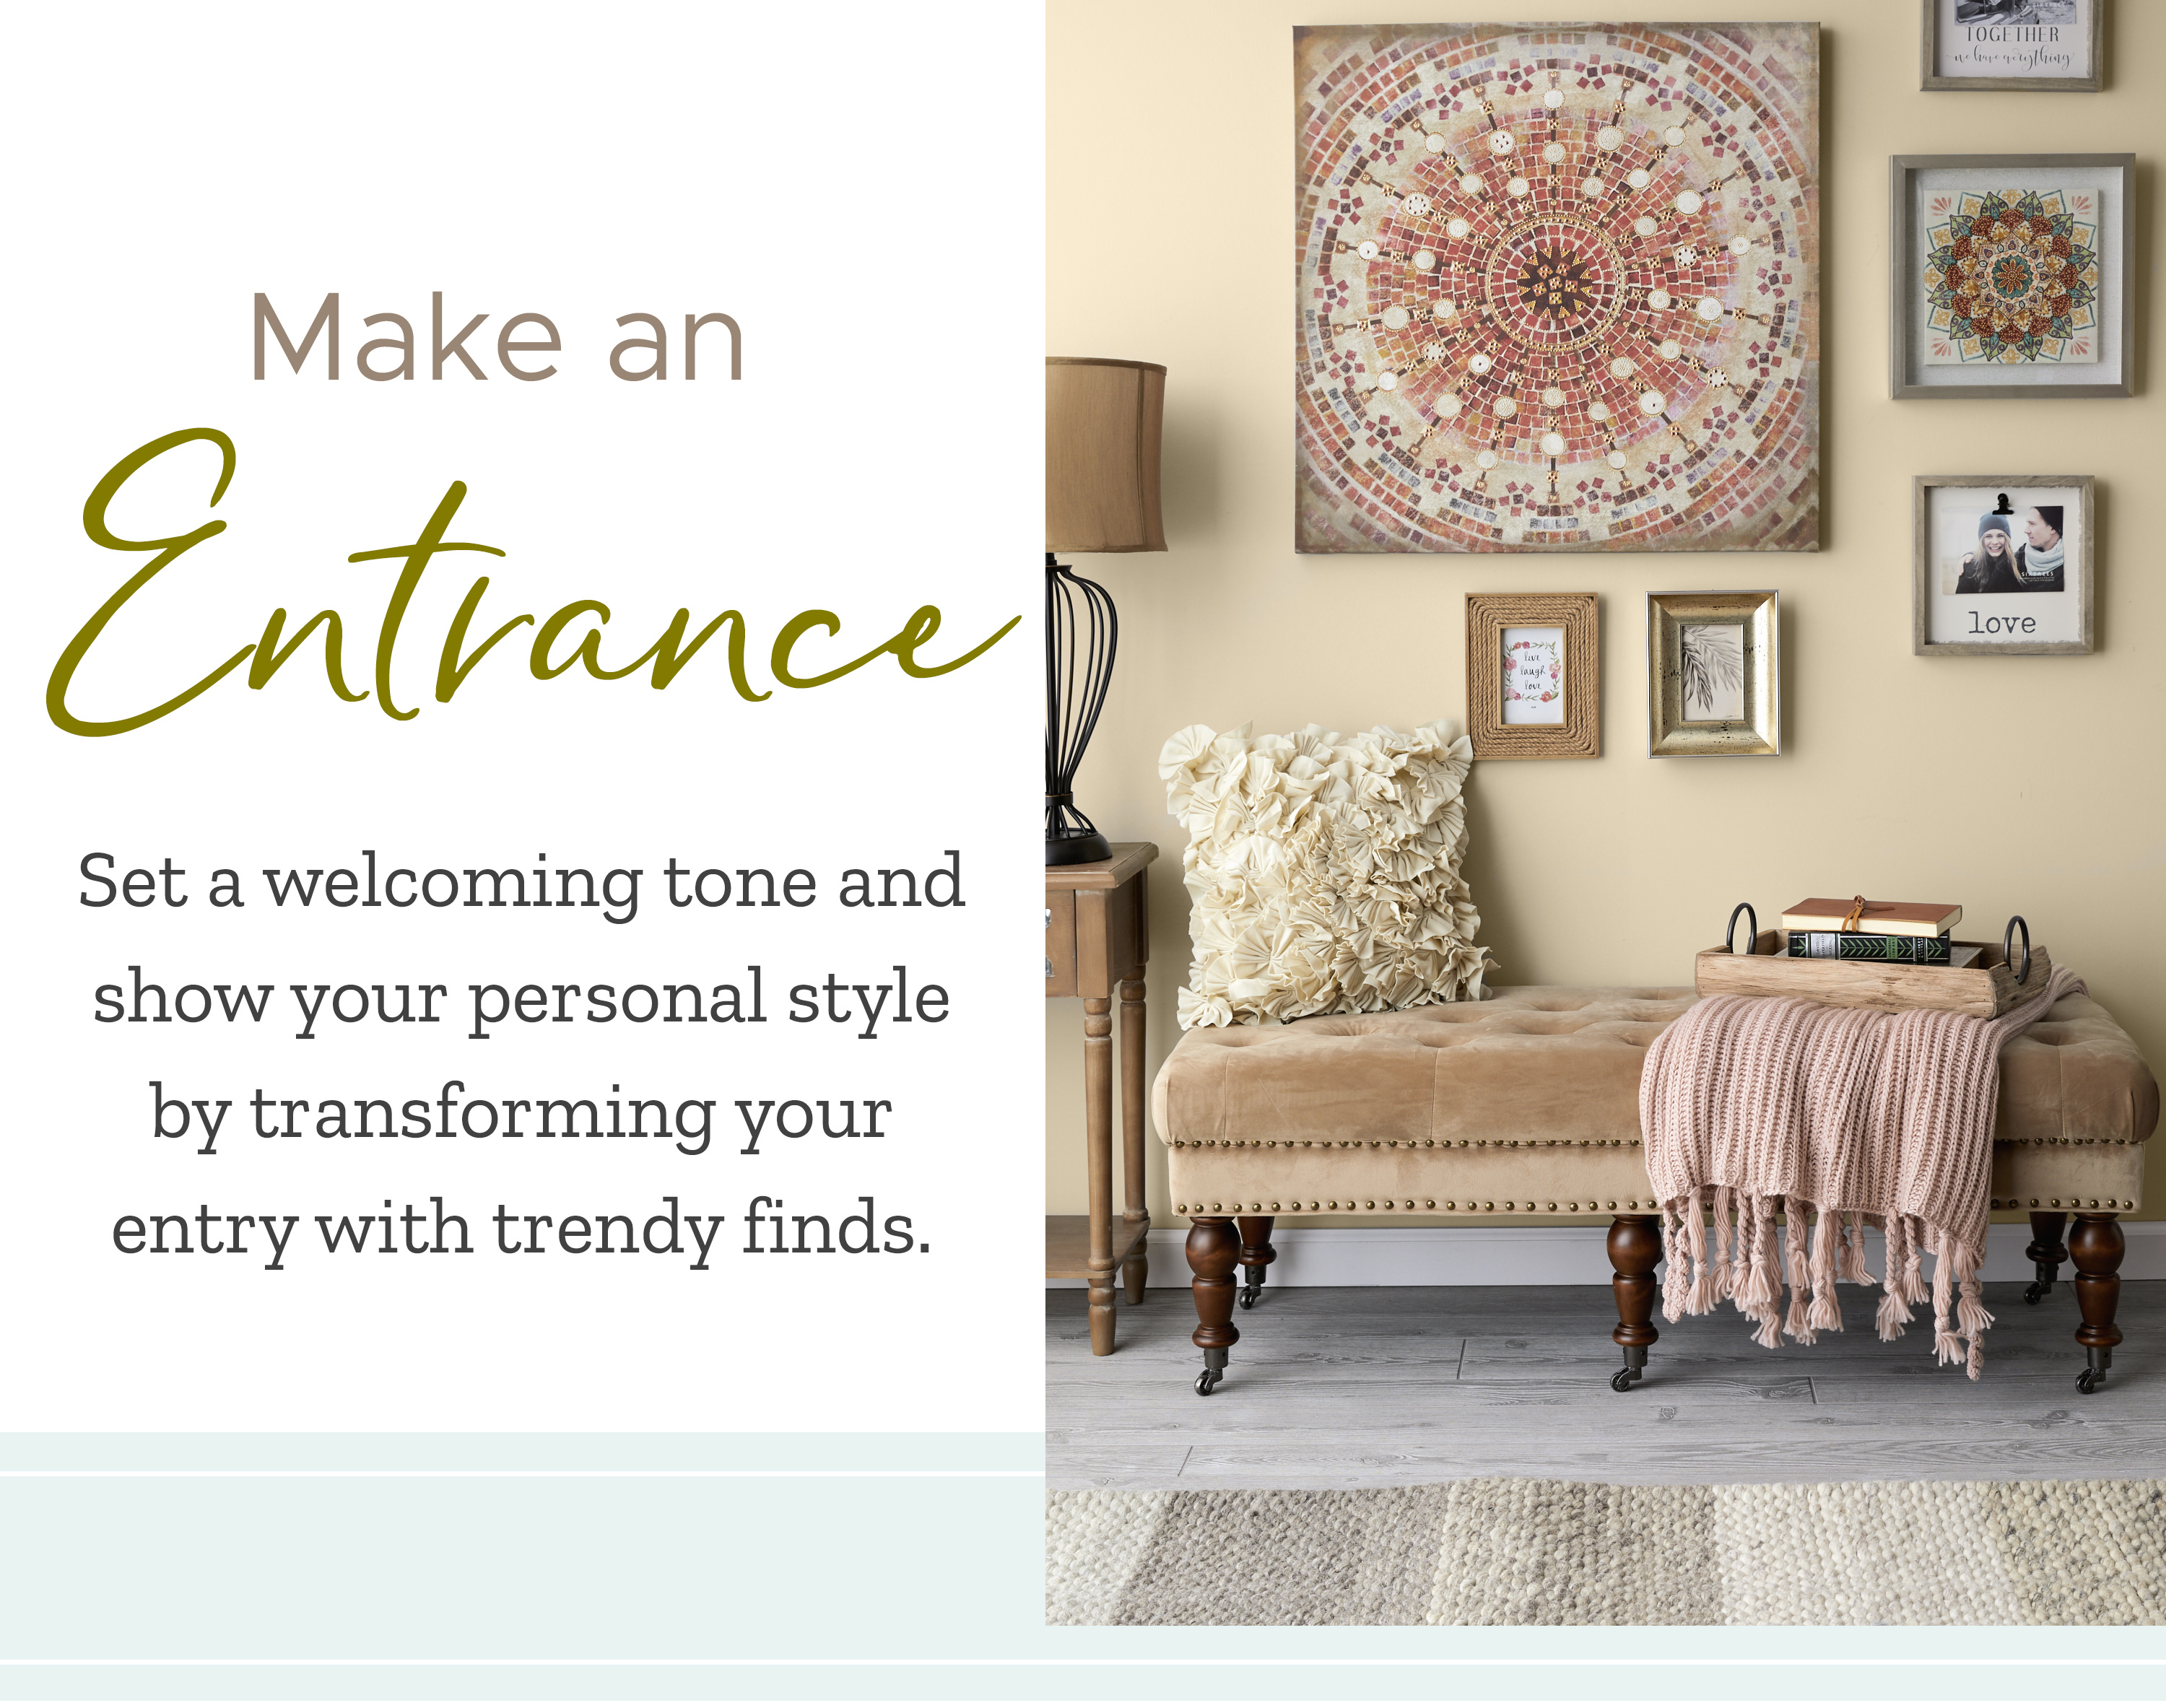 Set a welcoming tone and show your personal style by transforming your entry with trendy finds.